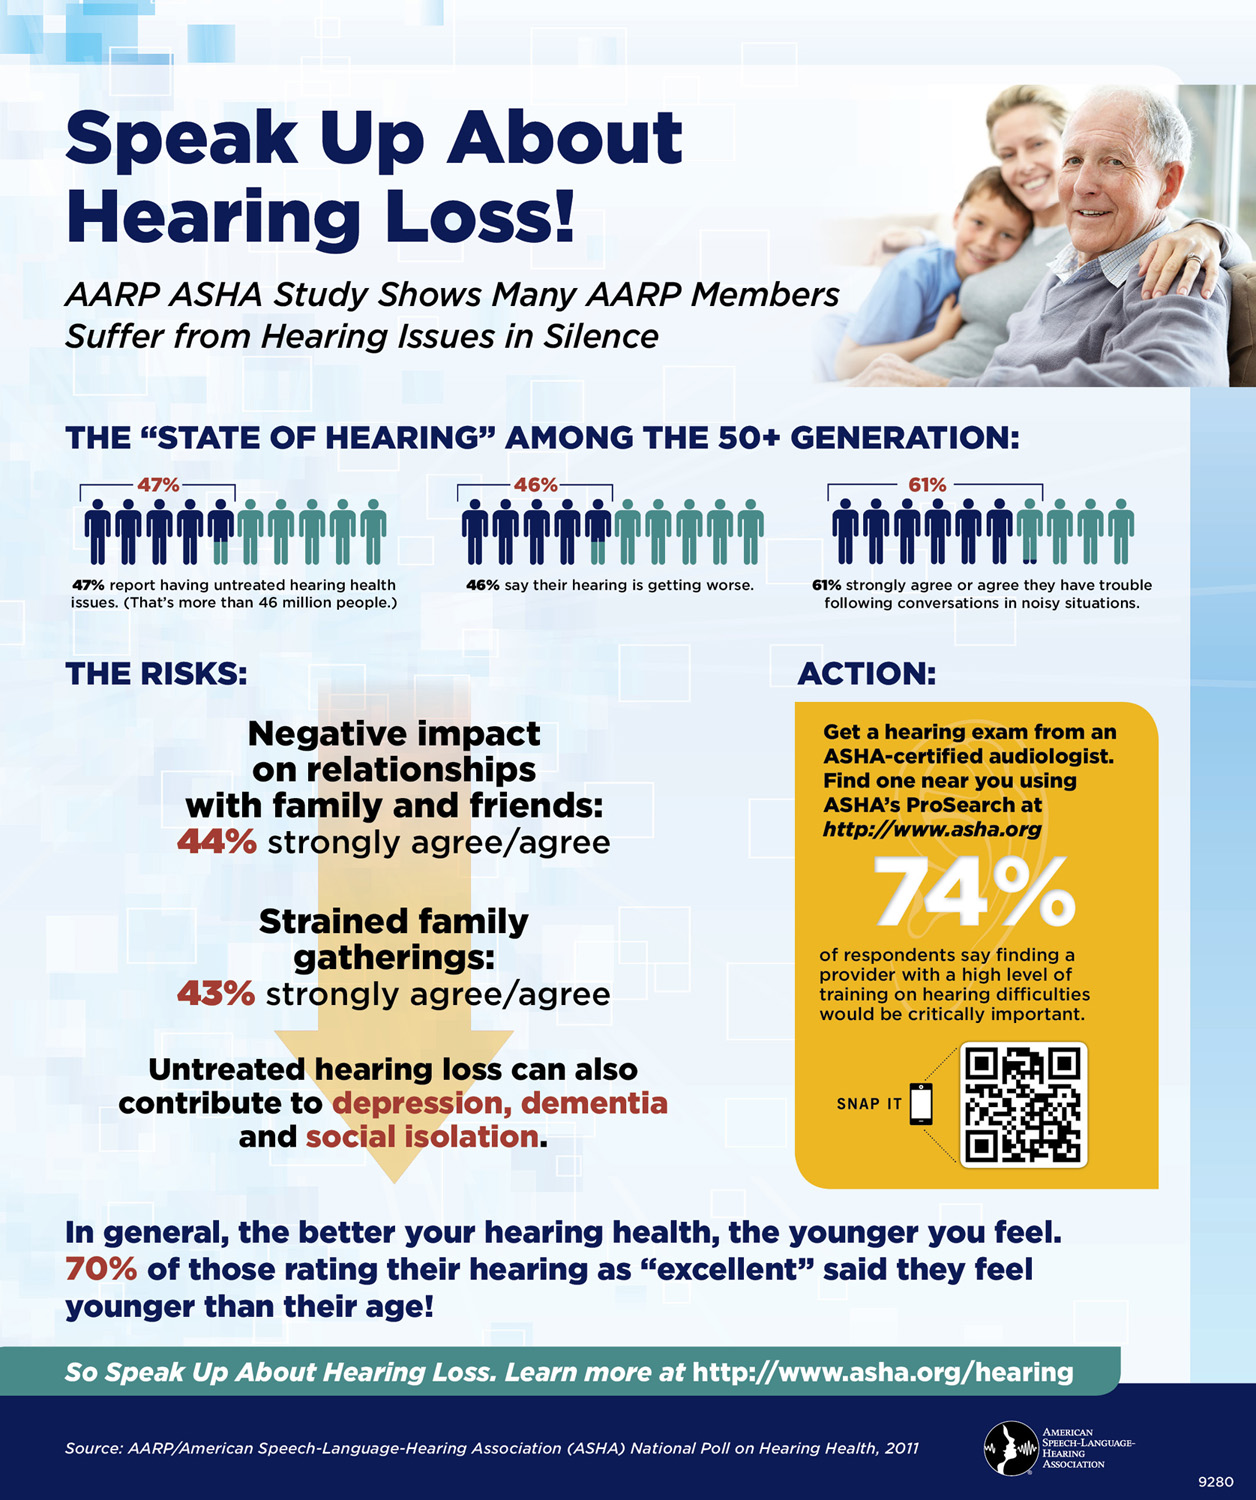 Speak Up About Hearing Loss